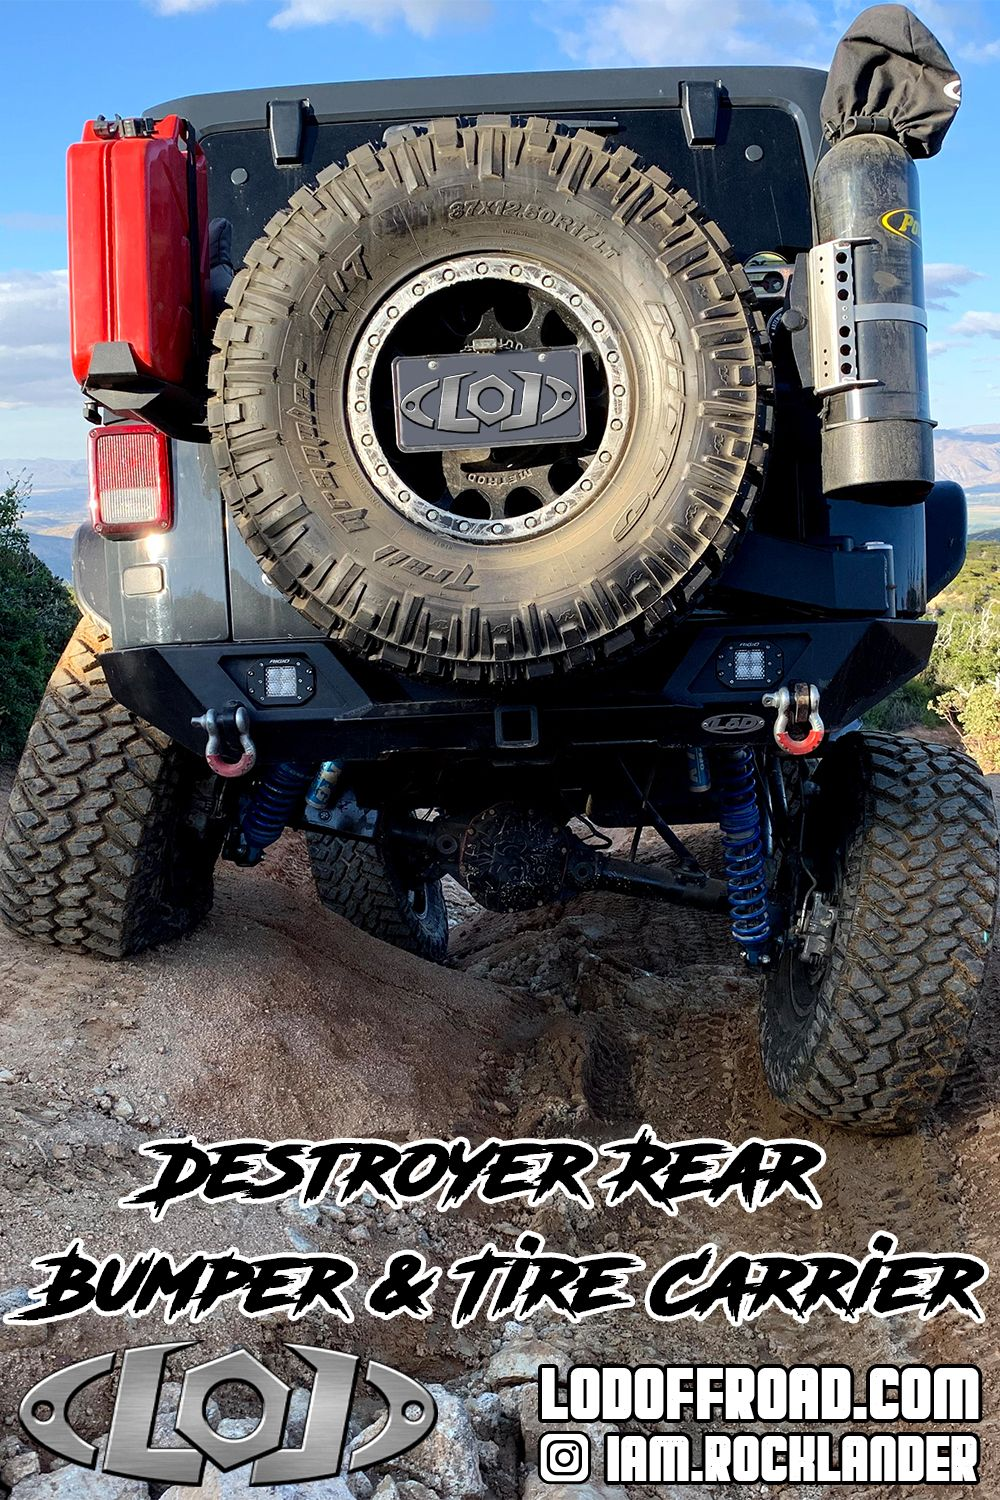 Pin By Ashley Corns On Cool Ideas In 2020 Jeep Jl Jeep Wrangler